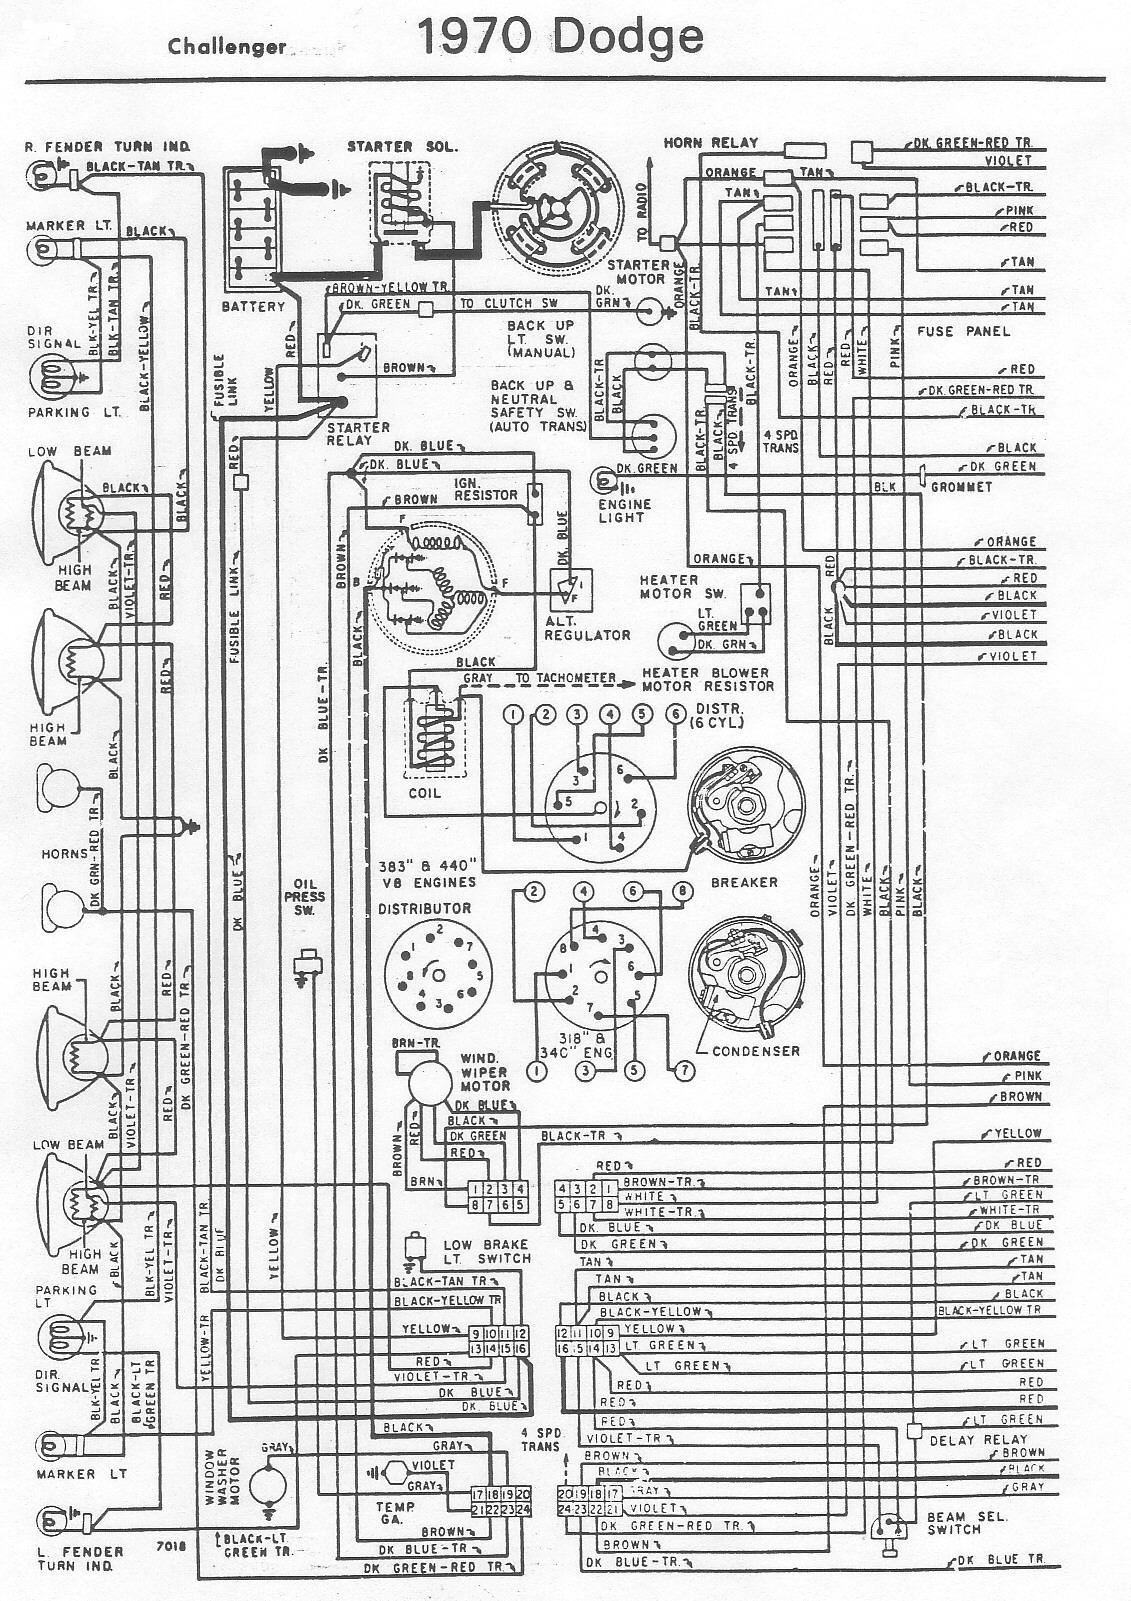 1970 Dodge Challenger Alternator Wiring Worksheet And Diagram 2002 Ram 3500 Another Diagrams U2022 Rh Benpaterson Co Uk